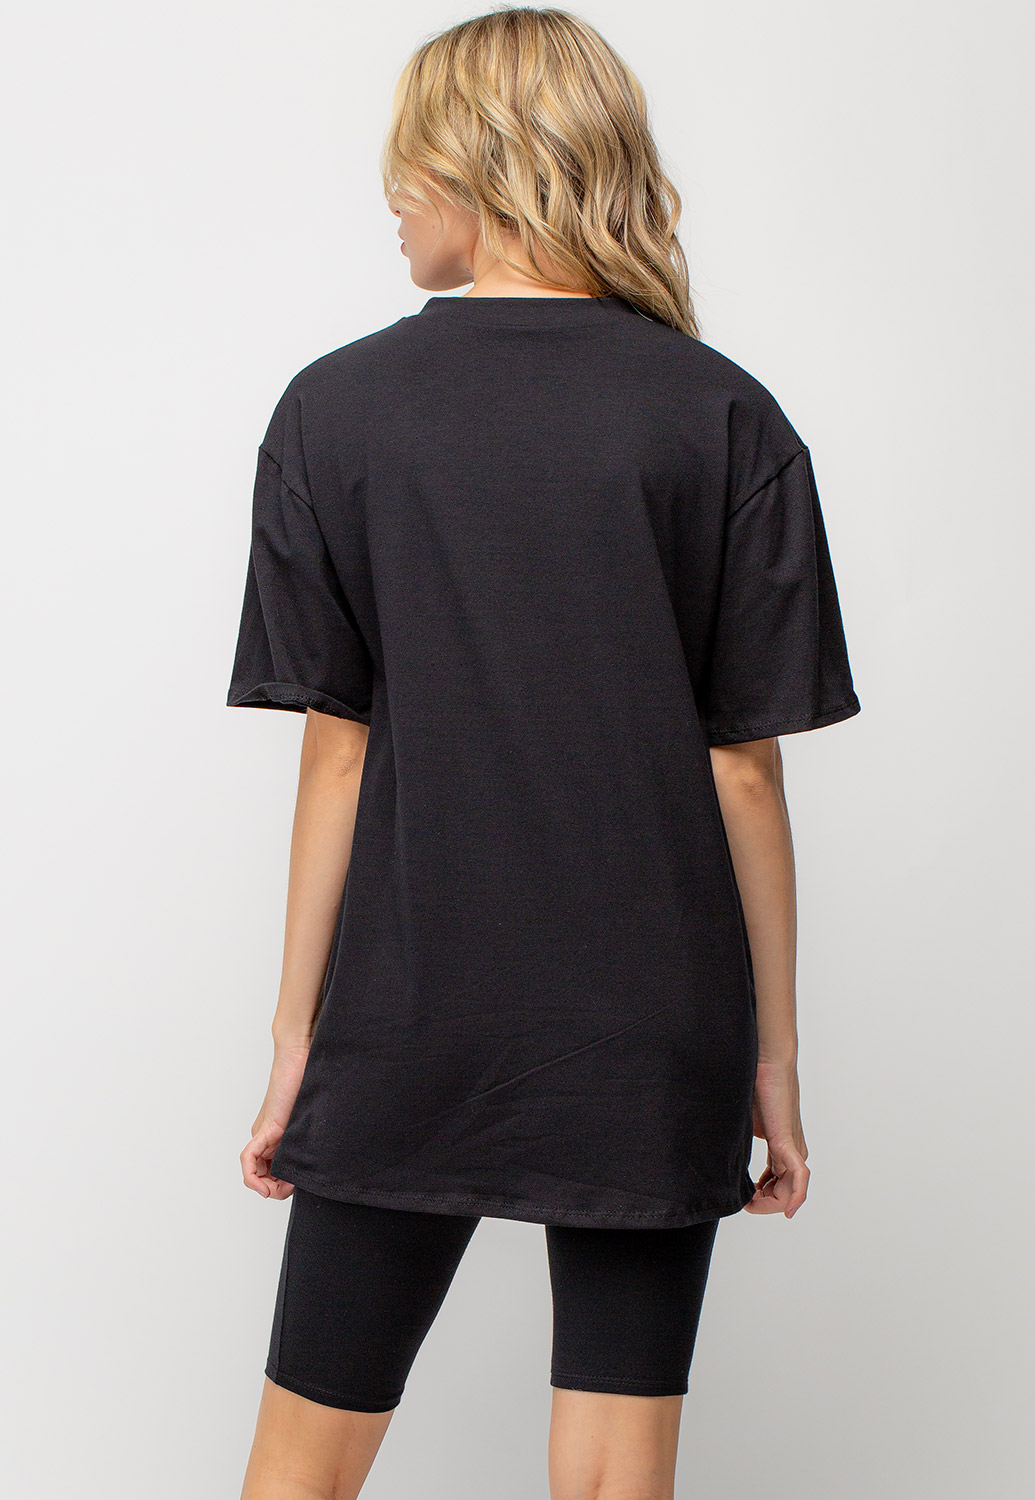 Oversized T-Shirt And Short Activewear Set